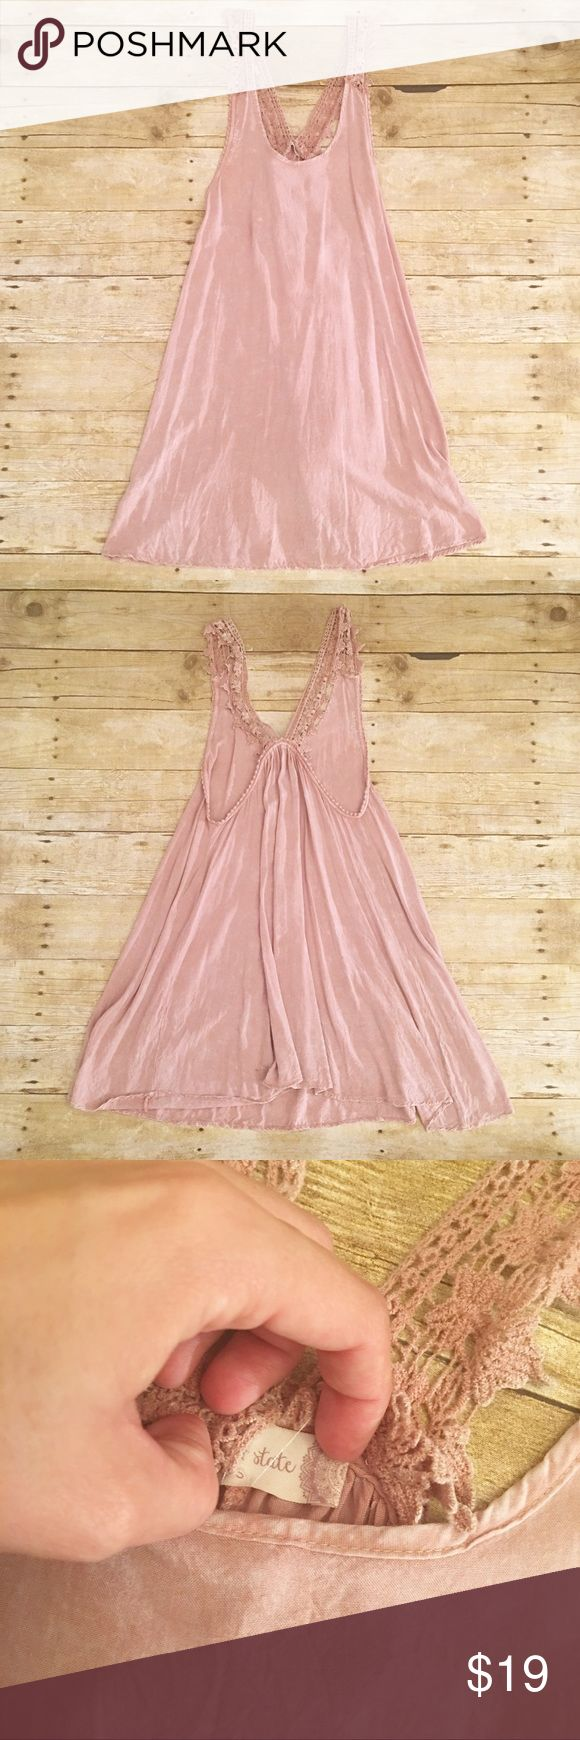 Pink/taupe Altar'd State crochet tank dress, small Very good used condition Altar'd State tank top dress in a size small. Almost a taupe/blush pink color. Warm taupe in the last photo. Very pretty! Also has a speckle look to it(factory distressed). No major issues that I see, just worn a good number of times. Total length- approximately 33.5 inches, bust- approximately 15 inches. A Altar'd State Dresses Midi